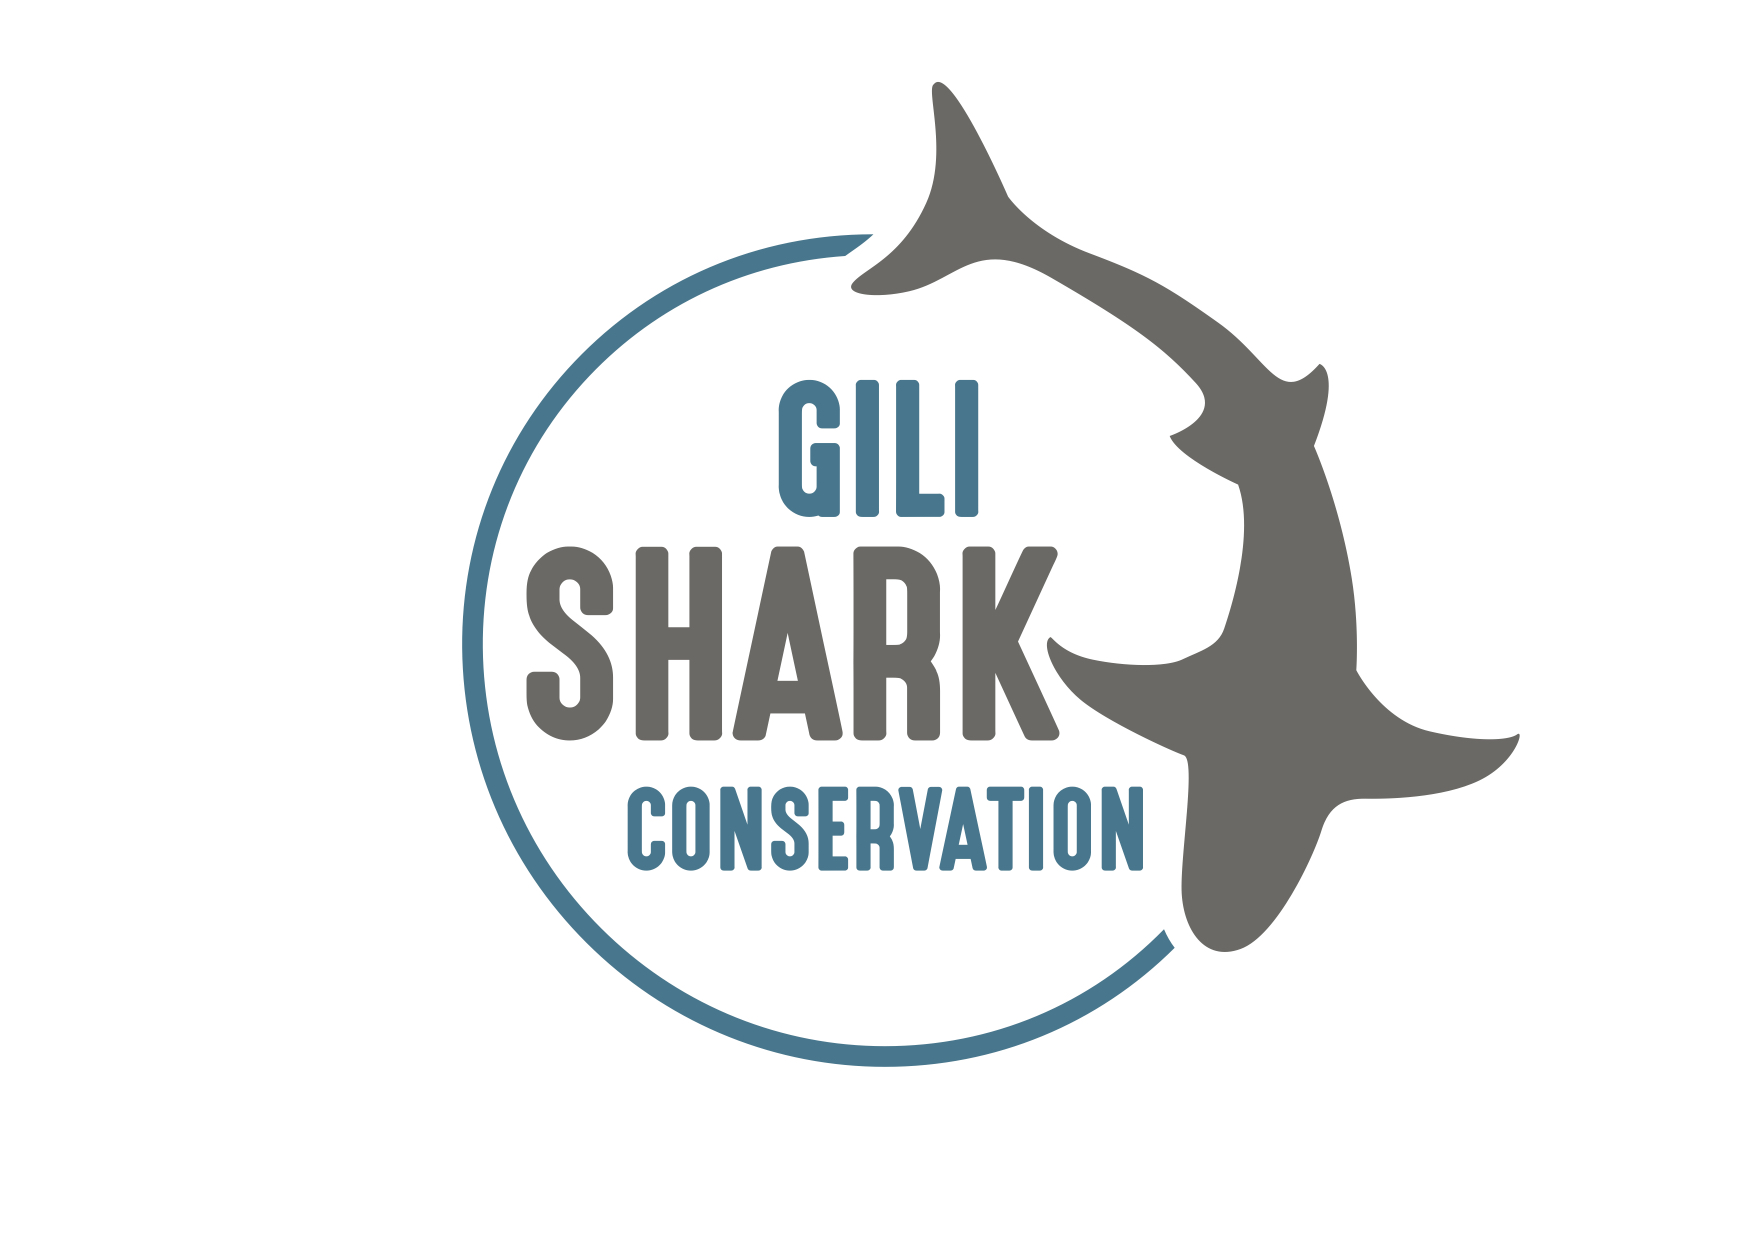 GILI SHARK CONSERVATION - When you choose Gili Shark Conservation as your org, you are helping fund a project geared toward creating a marine protected zone in the Bali Sea. The project takes place on Gili Air and dedicates all of their time to conservation. They work to clean the beaches, oceans, and of course, protect the sharks (and other marine life) surrounding the Gili Islands.